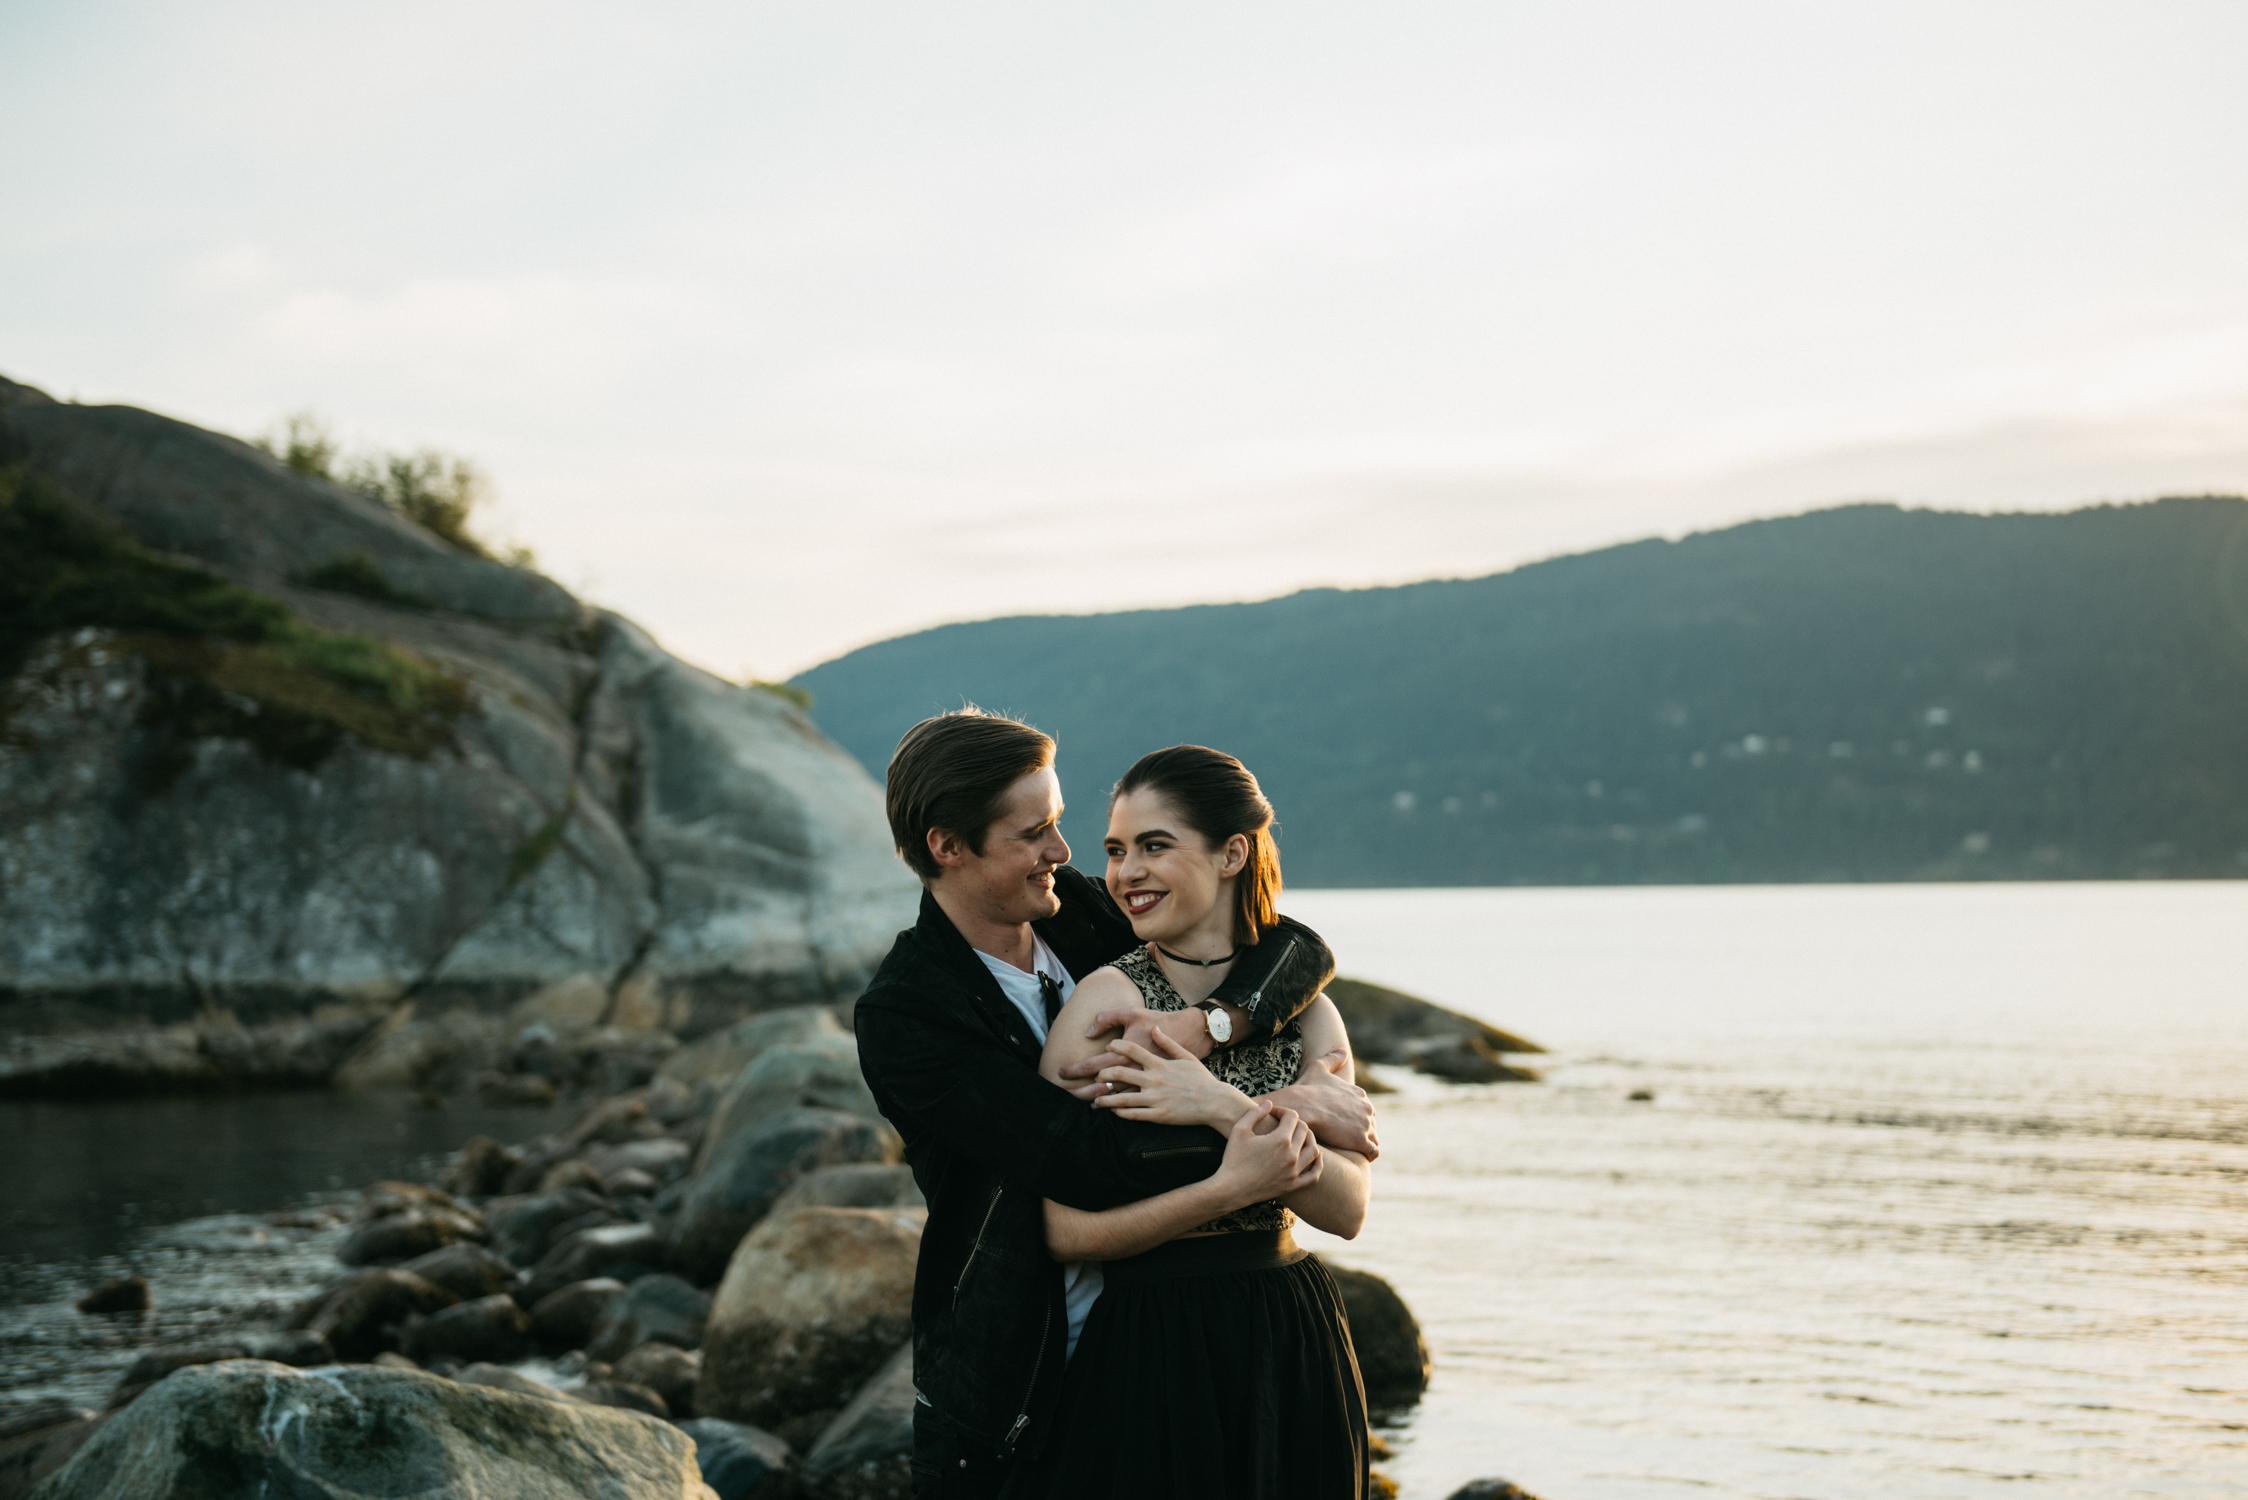 015_whytecliff_vancouver_bc_engagement.jpg